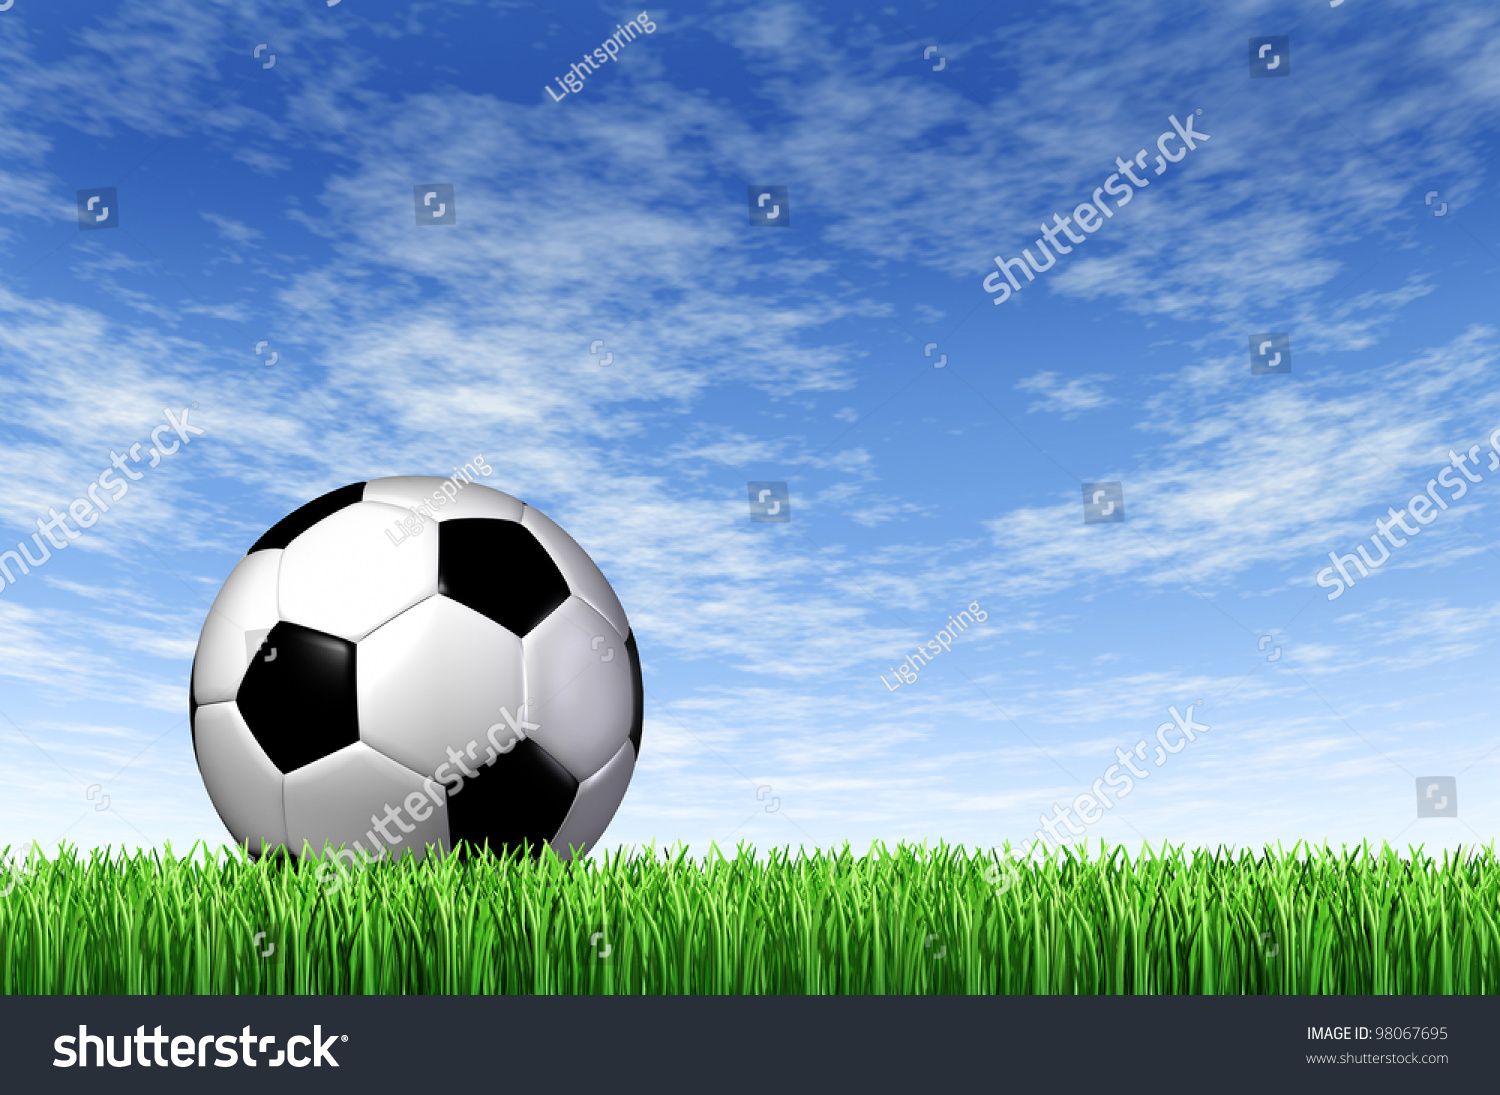 Soccer Football On Green Field With Blue Sky Background: Soccer Ball And Grass Field Background With A Blue Sky And